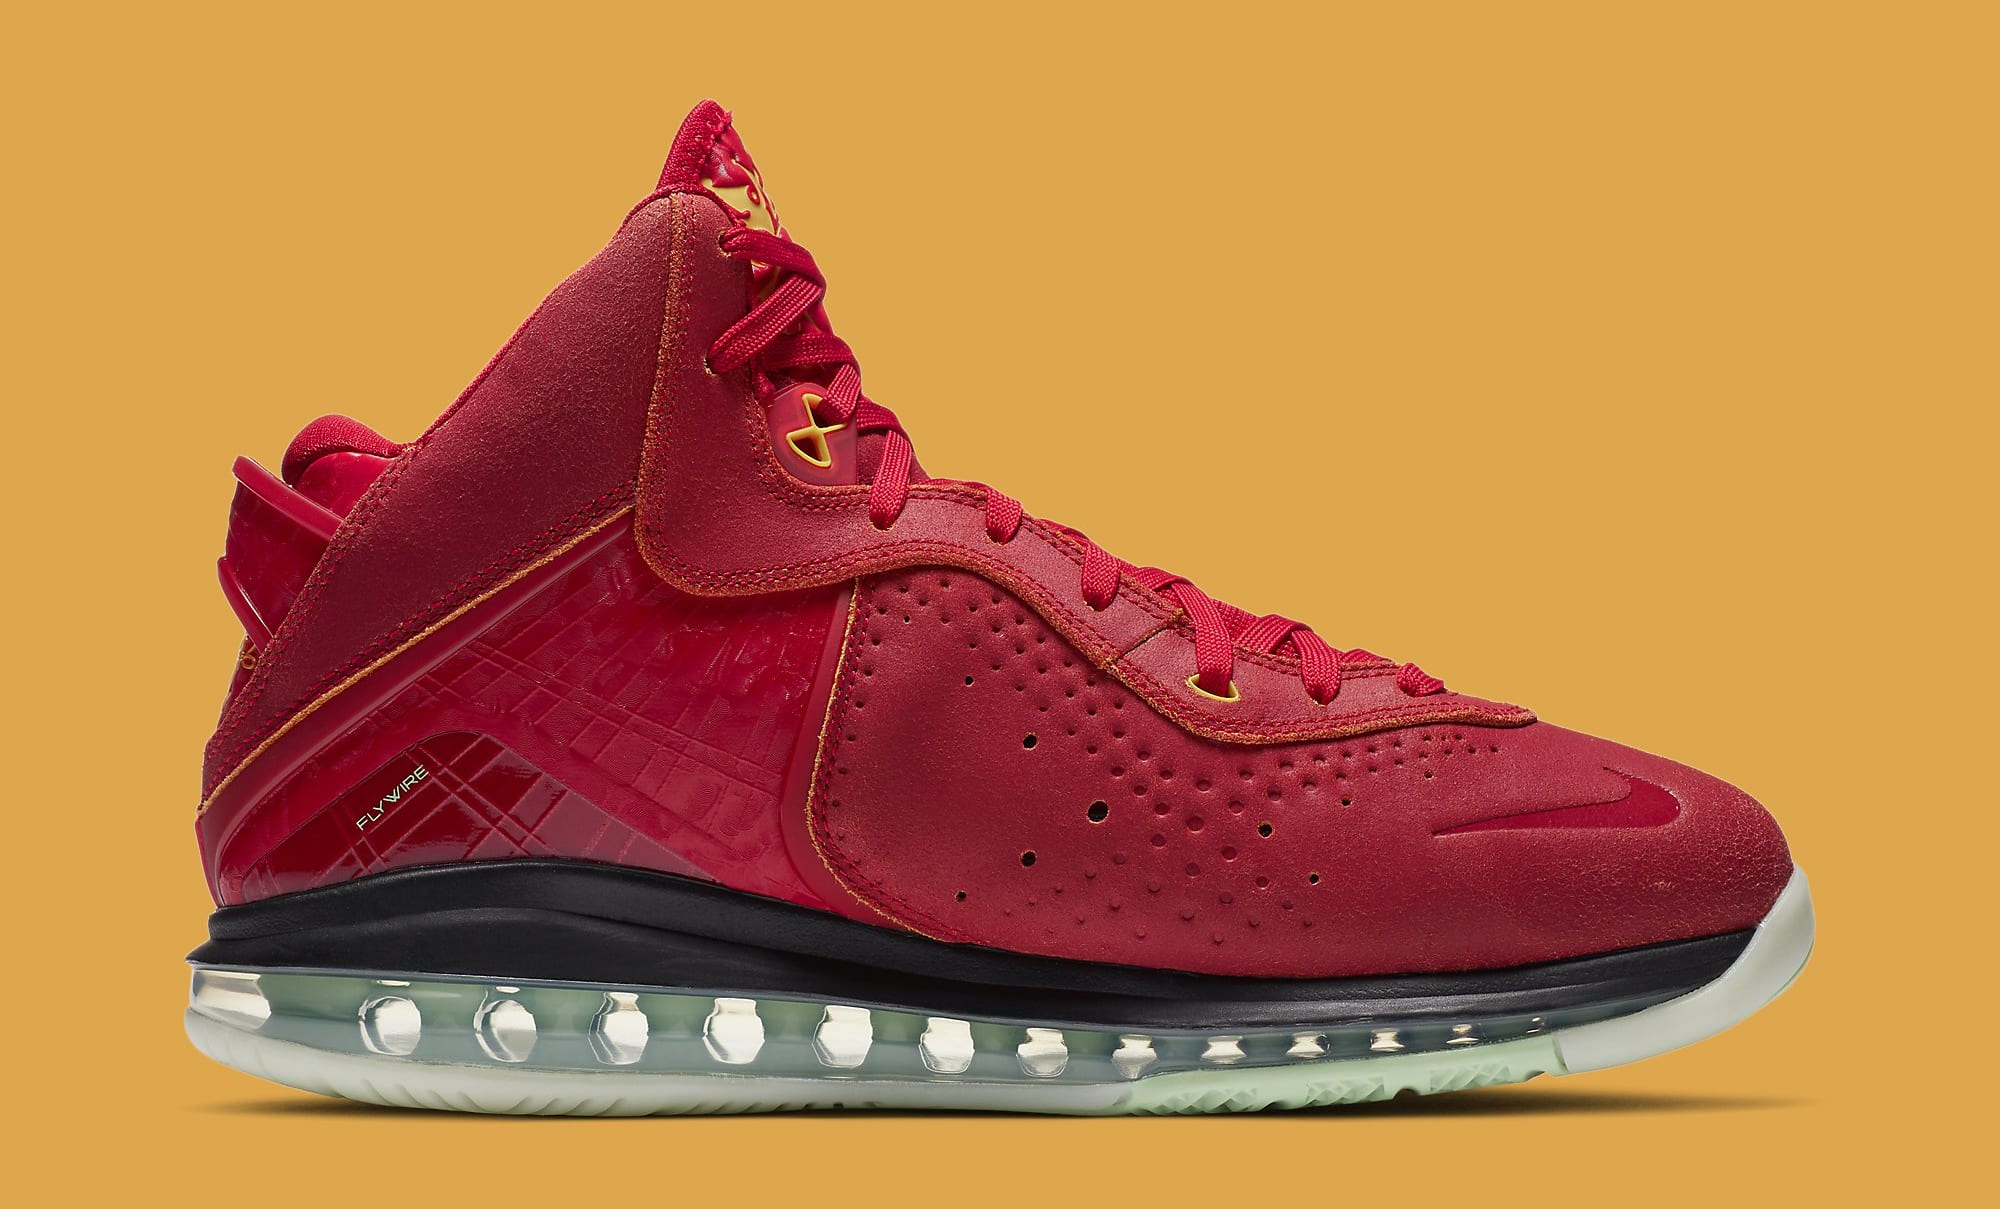 Nike LeBron 8 QS 'Gym Red' CT5330-600 Medial